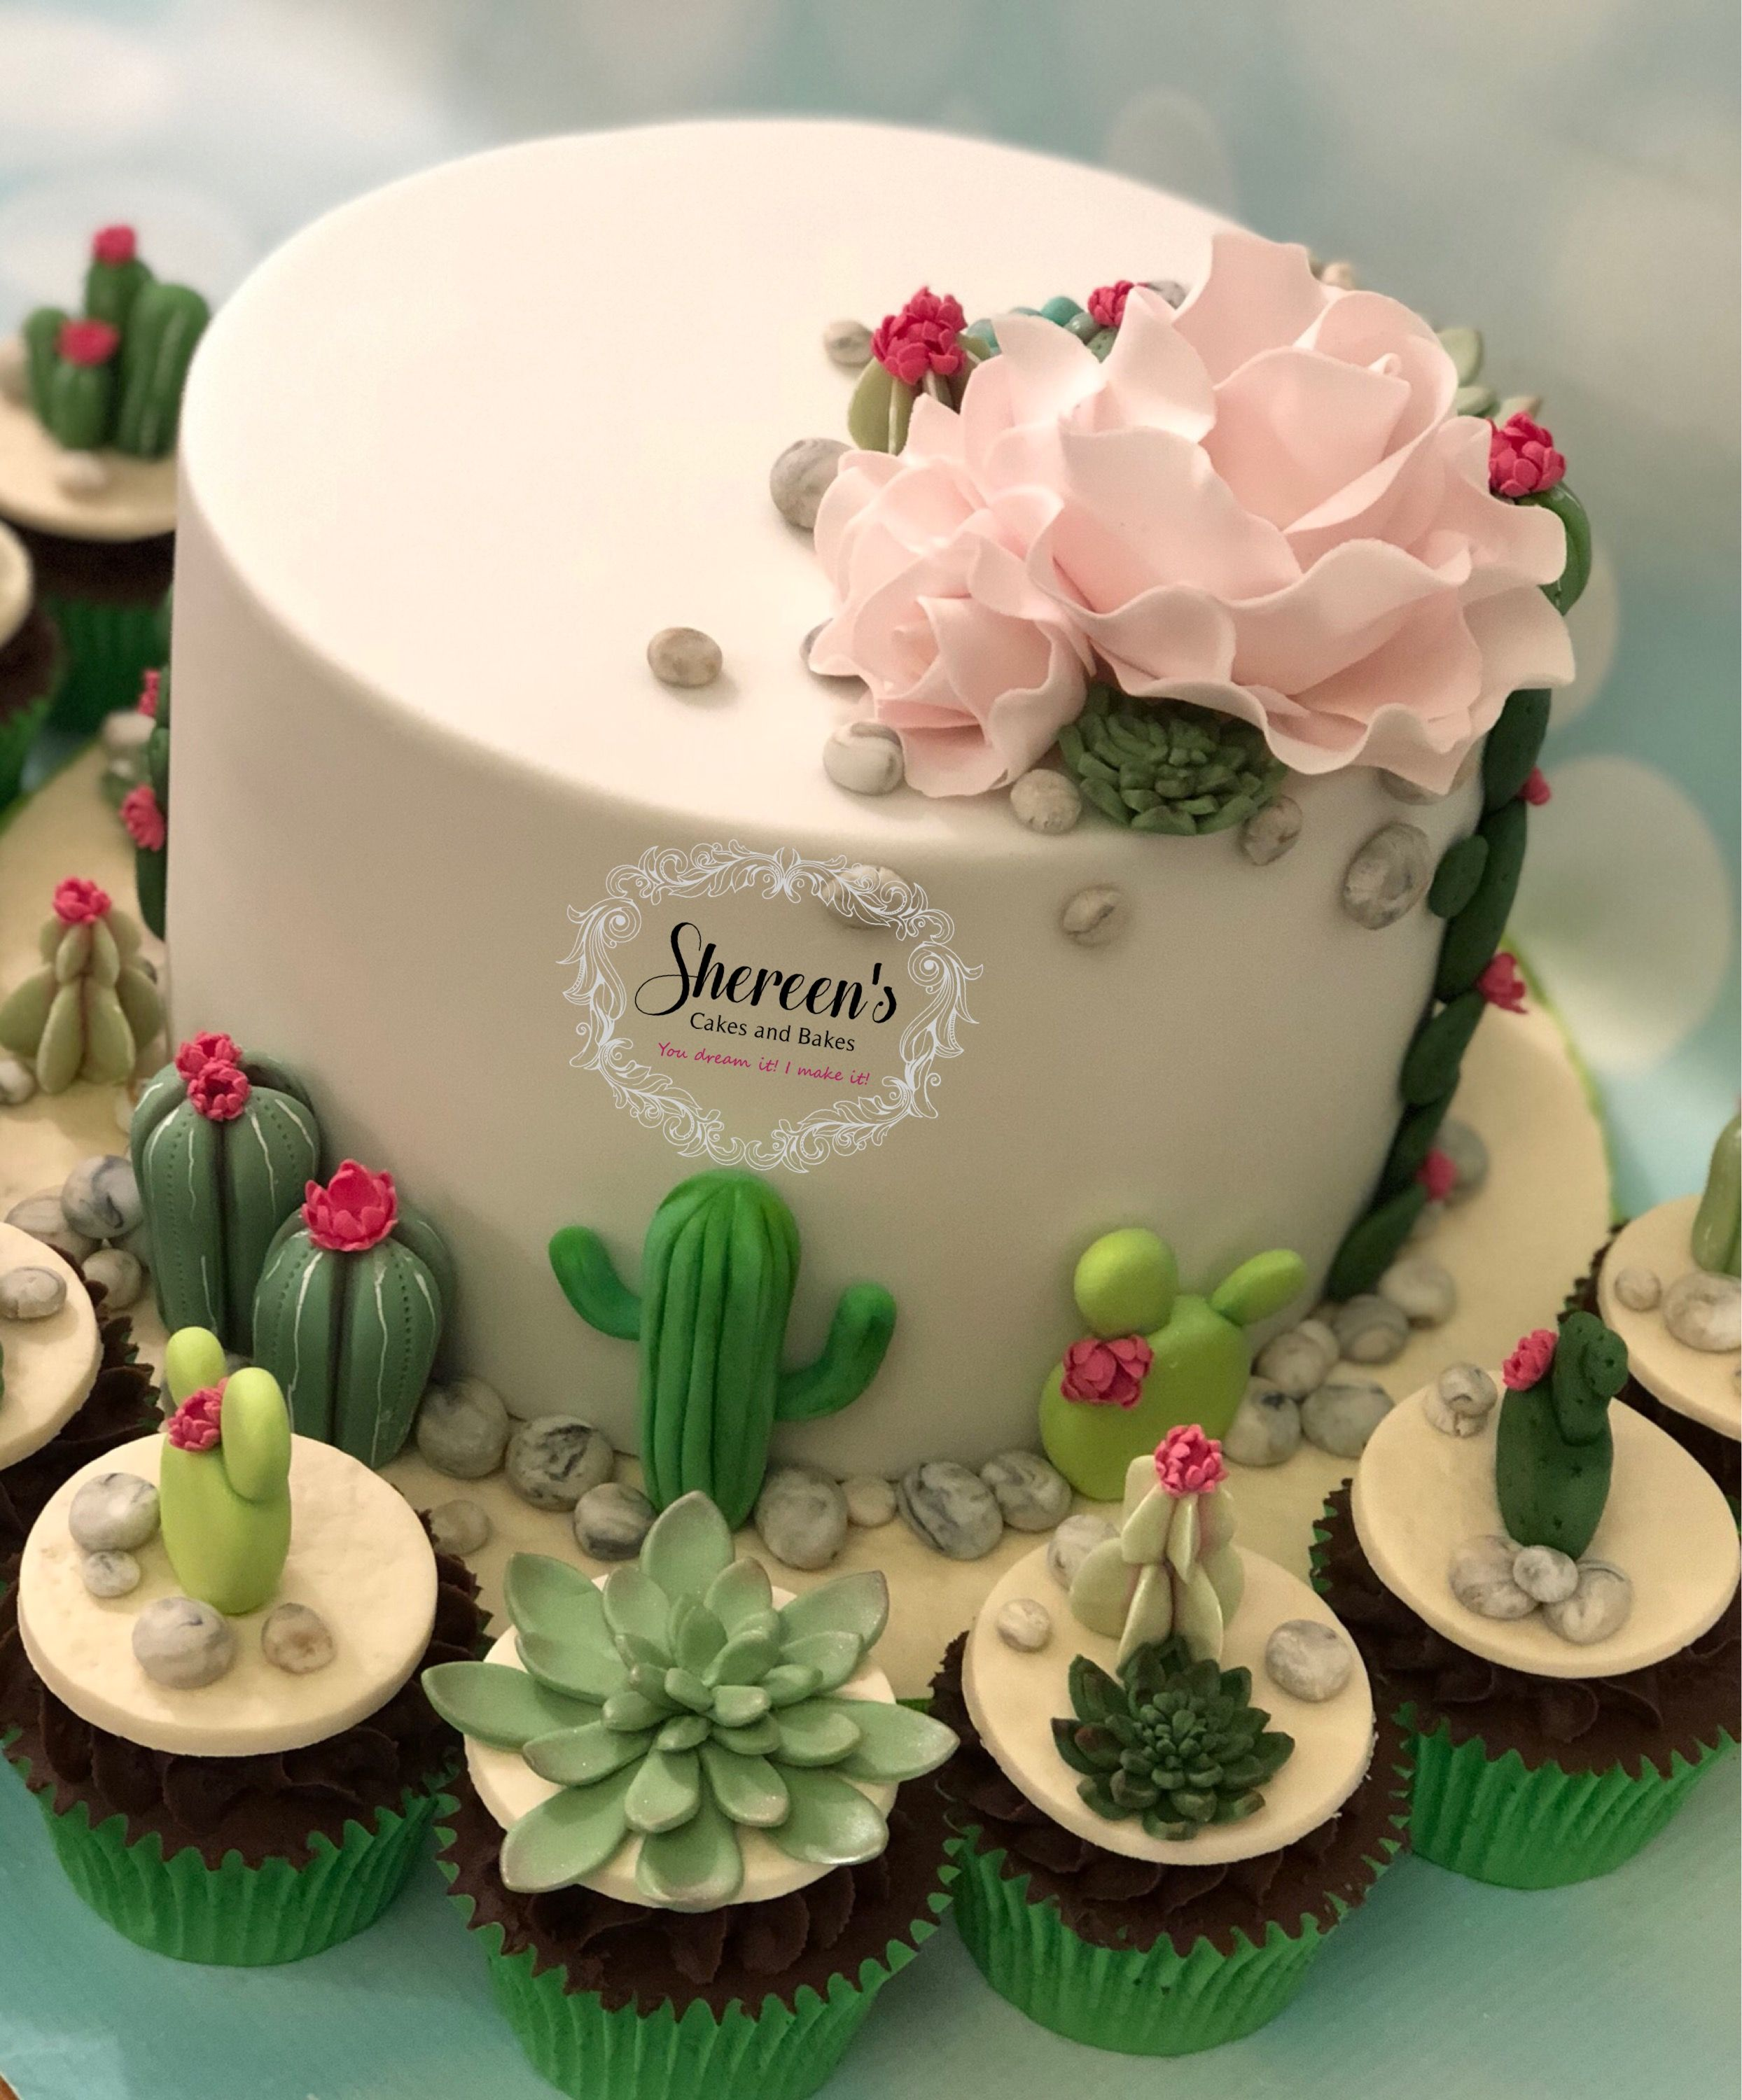 Cactus Cacti Birthday Cake With Flowers And Roses All Handmade With